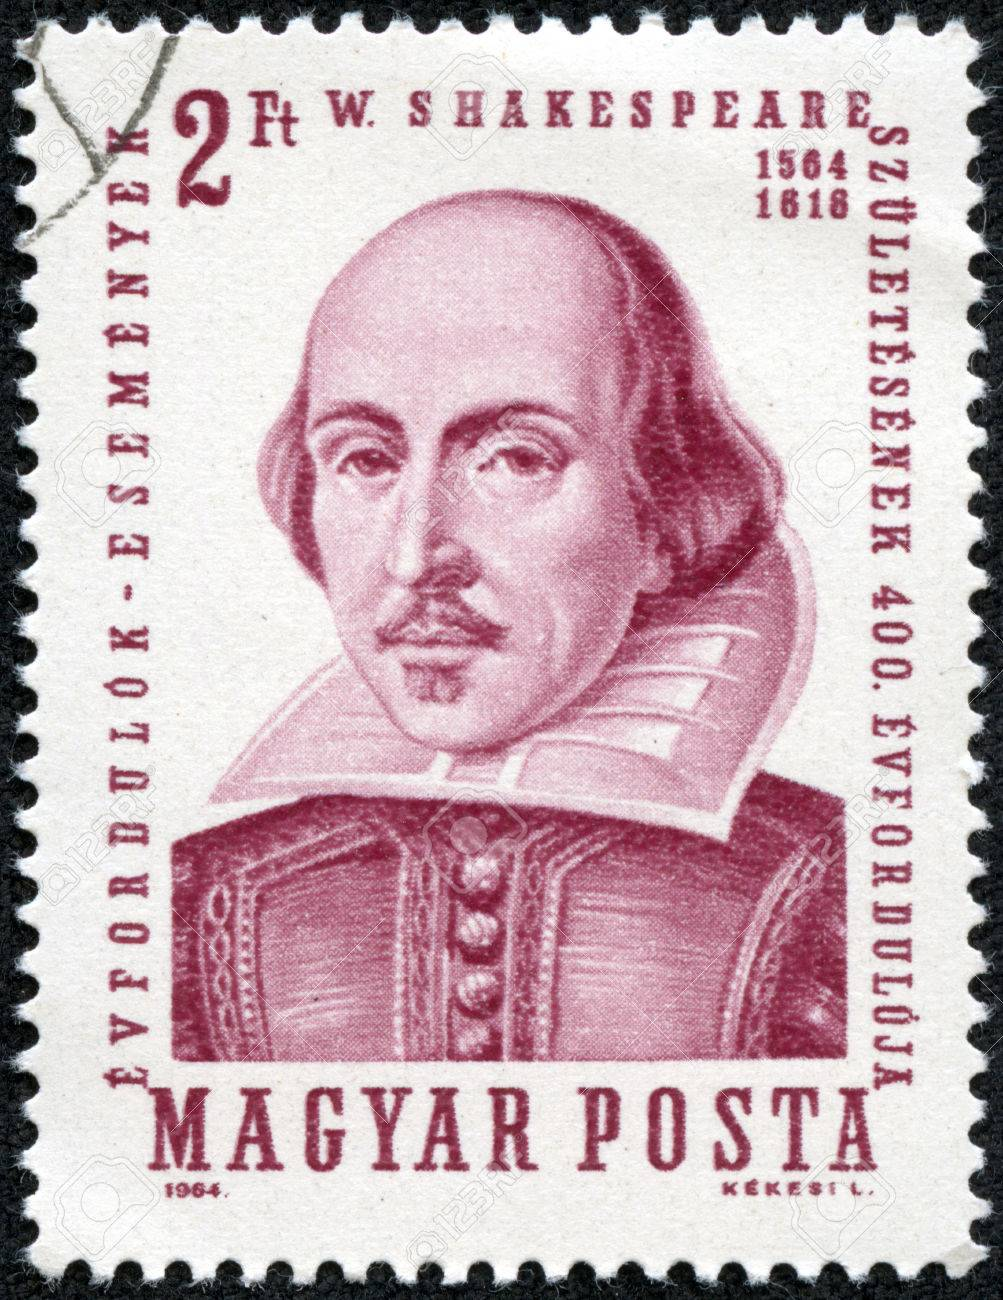 HUNGARY - CIRCA 1964  A stamp printed in Hungary shows image of William Shakespeare  1564-1616 , the playwright, circa 1964 Stock Photo - 27652650